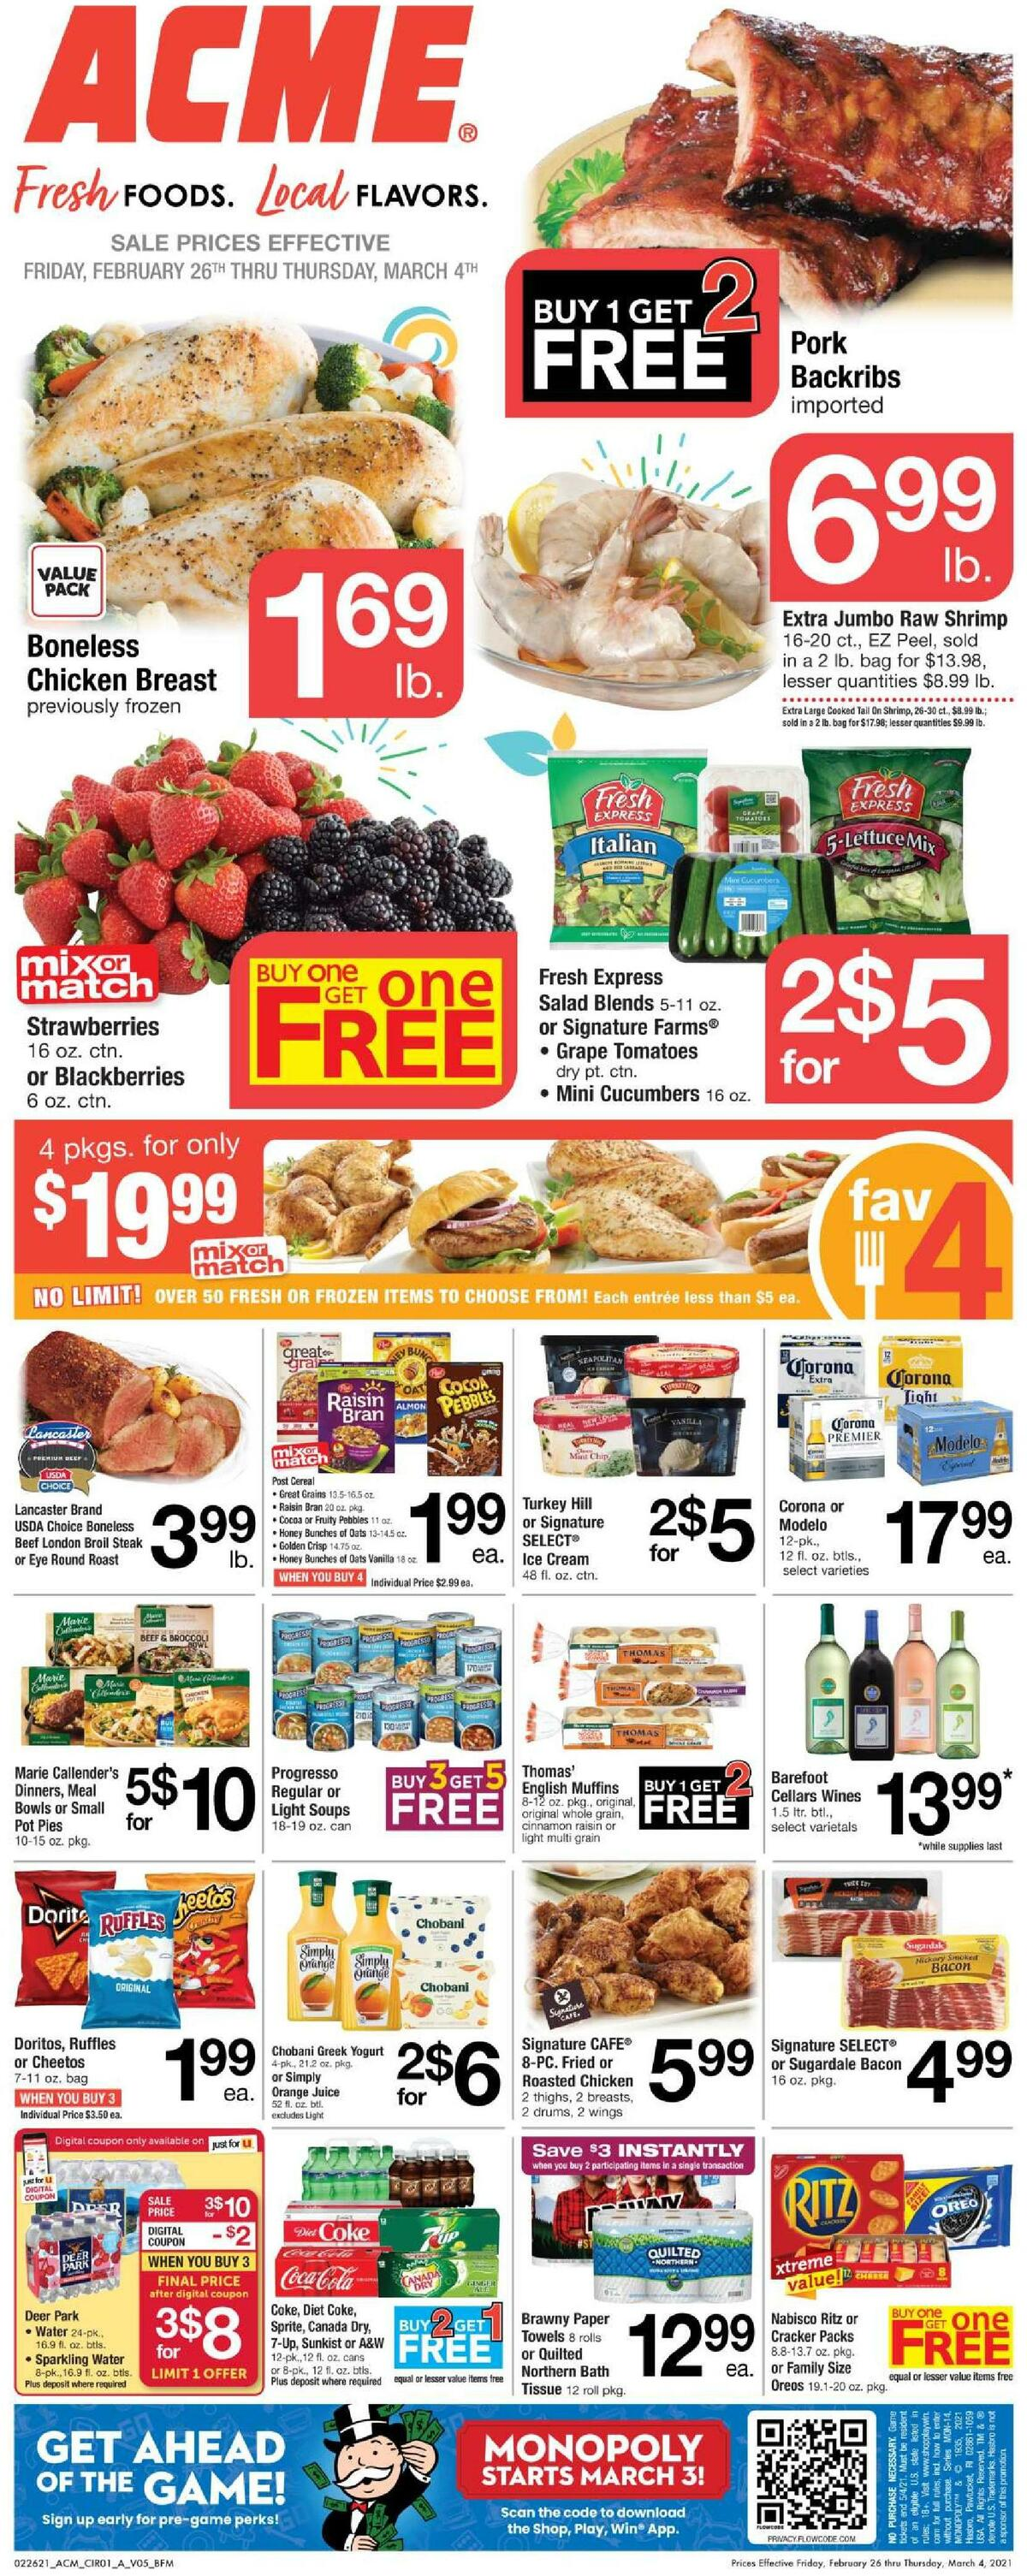 ACME Markets Weekly Ad from February 26